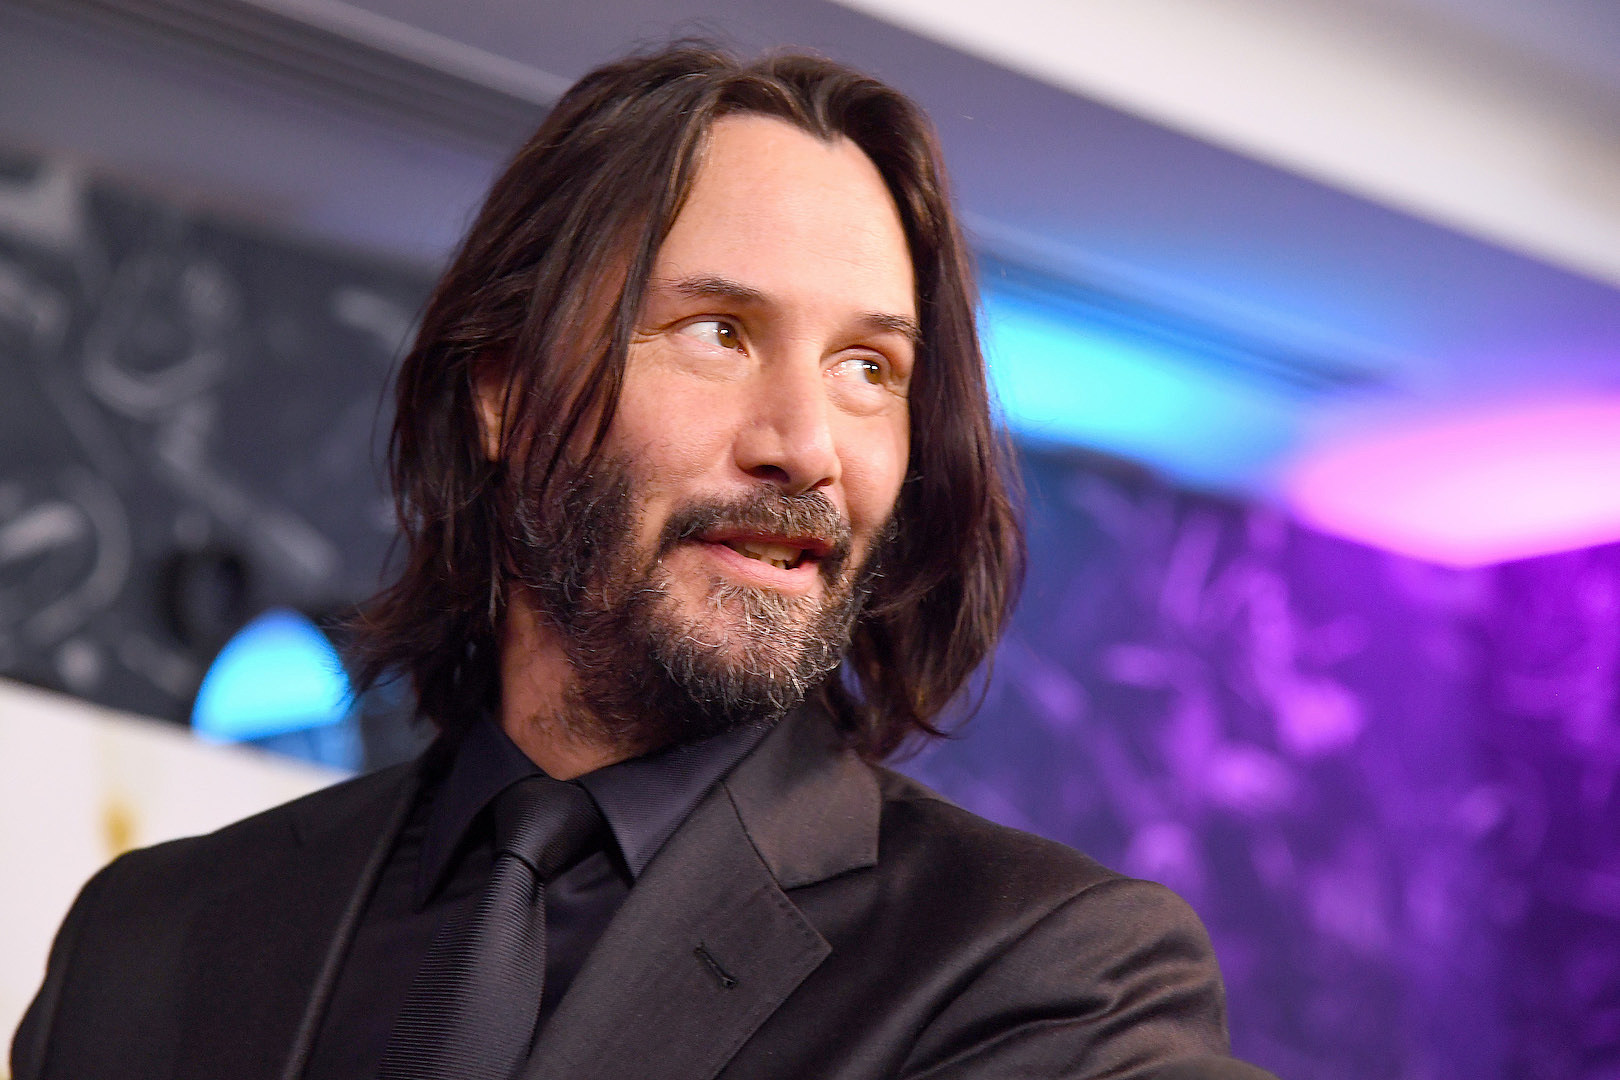 Keanu Reeves Shows Off Shiny Guitar in Use for 'Bill & Ted' Sequel